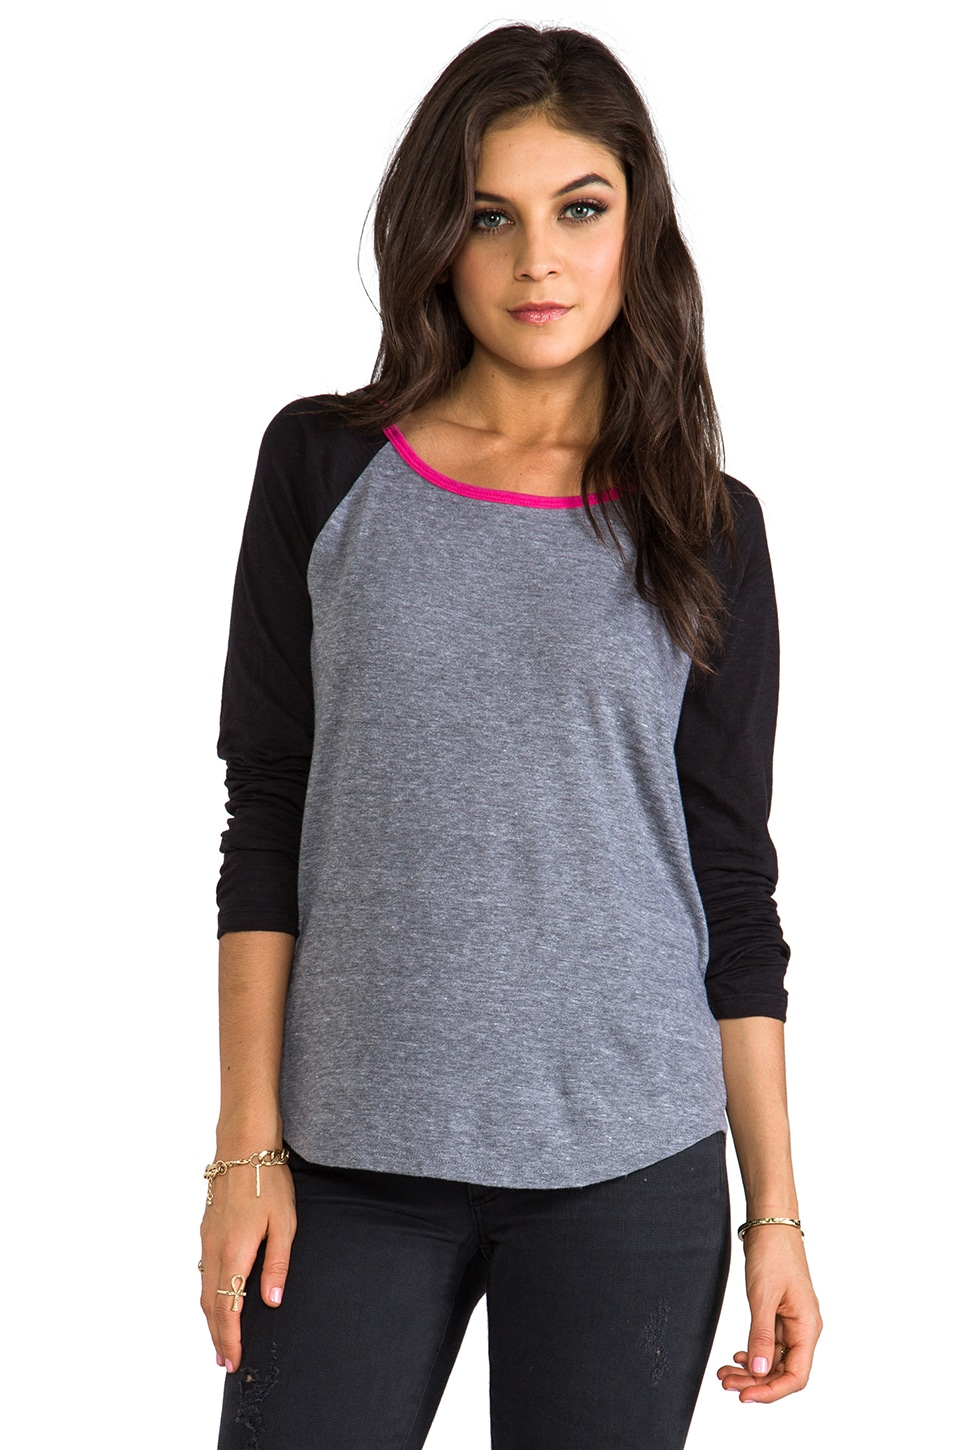 C&C California LS Triblend Jersey Mixed Baseball Tee in Heather Grey